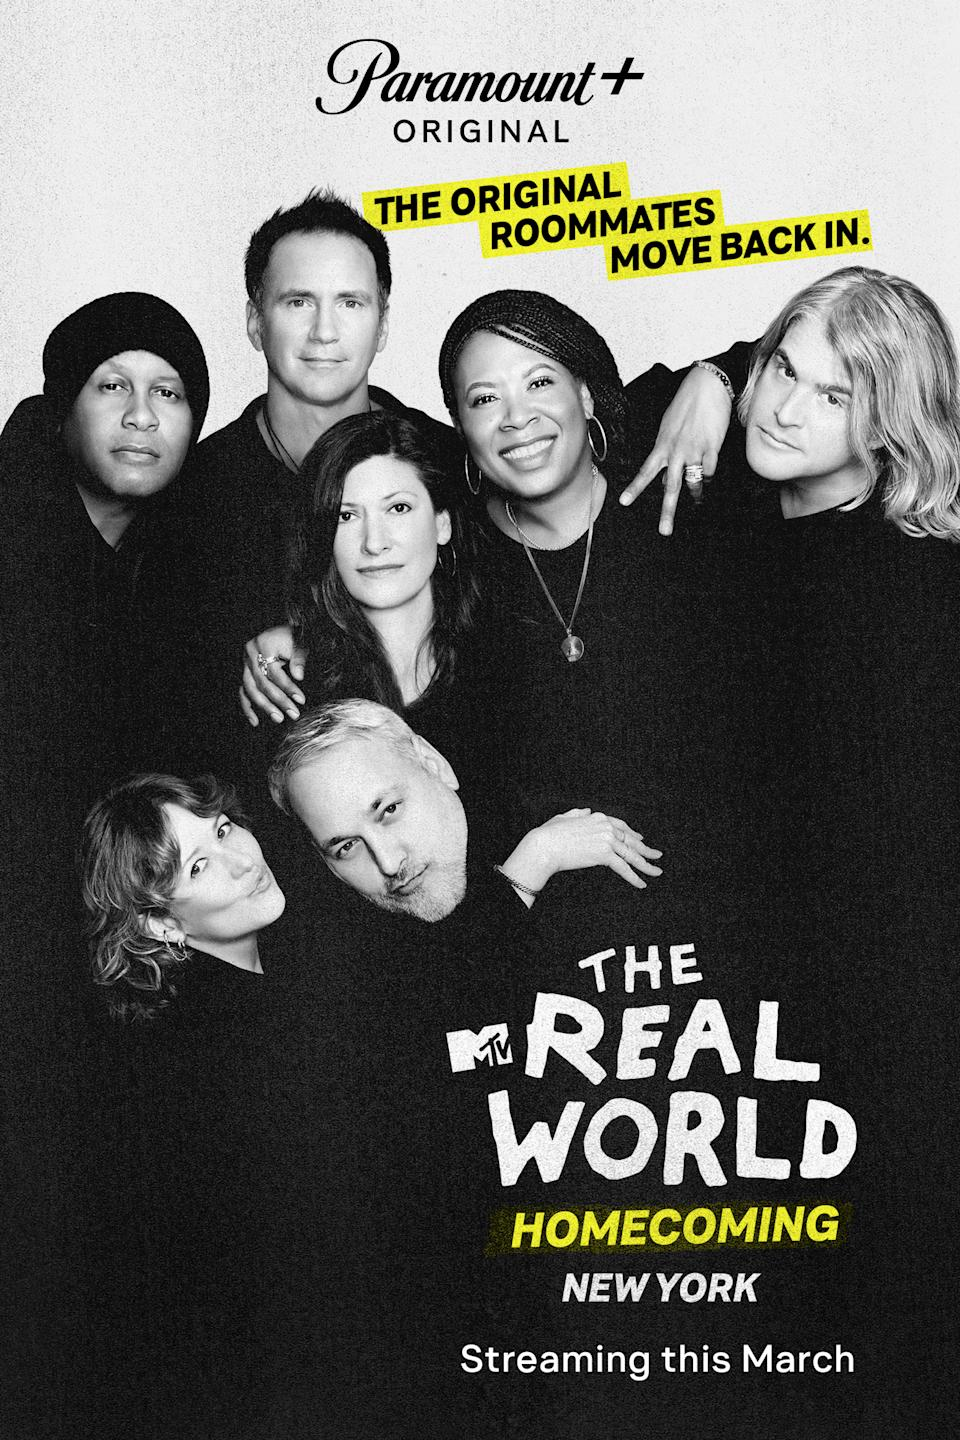 The Real World Season 1 cast, clockwise: Kevin Powell, Eric Nies, Julie Gentry, Heather B. Gardner, Andre Comeau, Norman Korpi, Becky Blasband. (Photo: MTV/Paramount+)